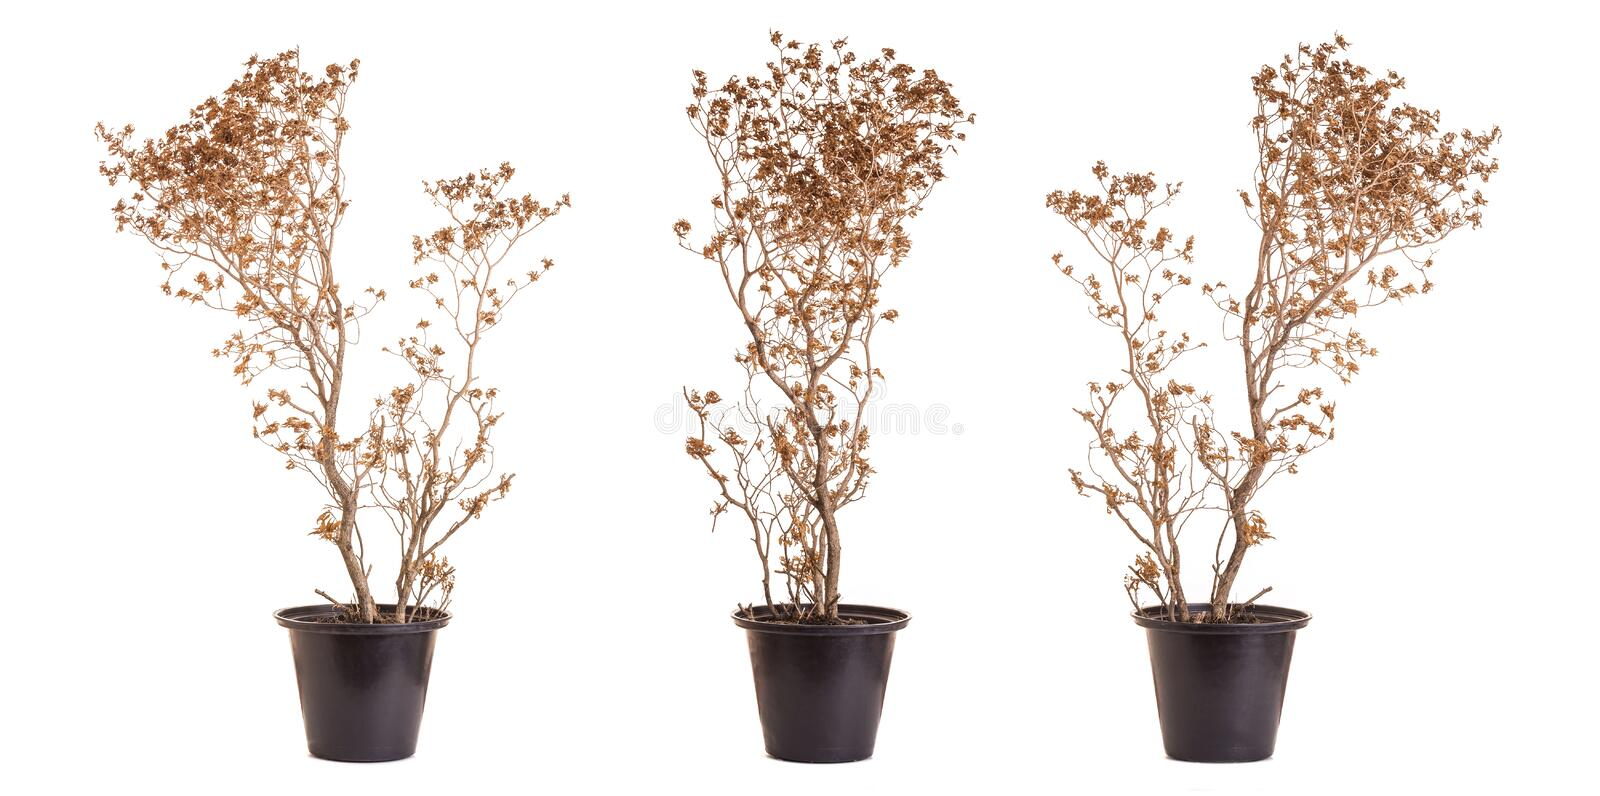 Brown dead plant in potted. Studio shot isolated on white background stock photography